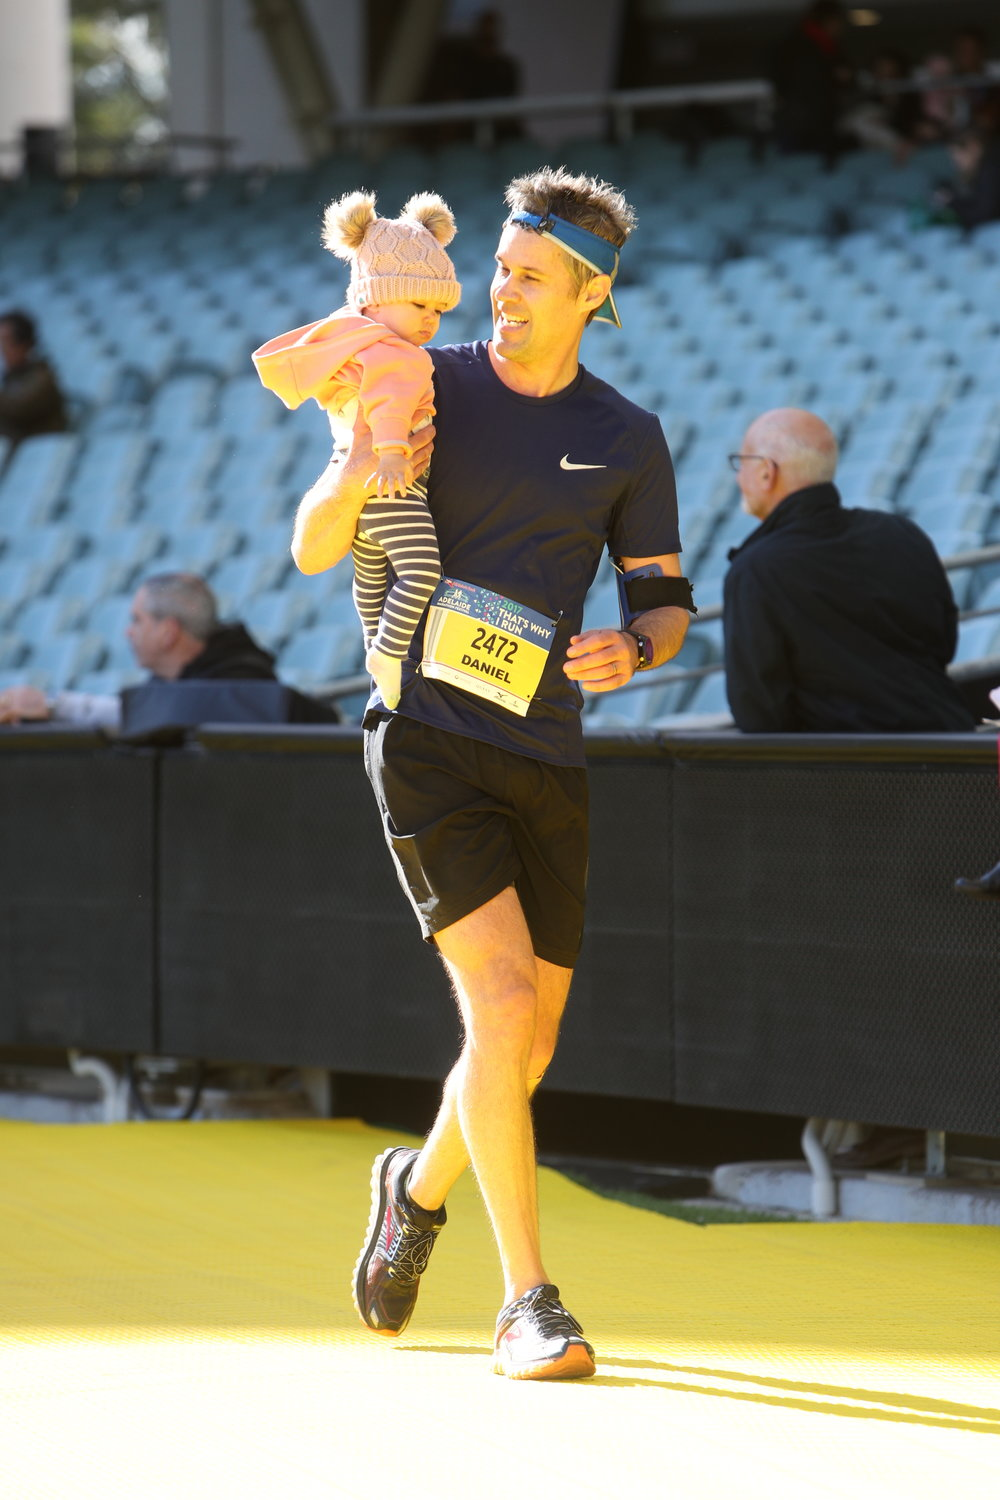 Adelaide Half Marathon 2017 at finish line with daughter, Holly